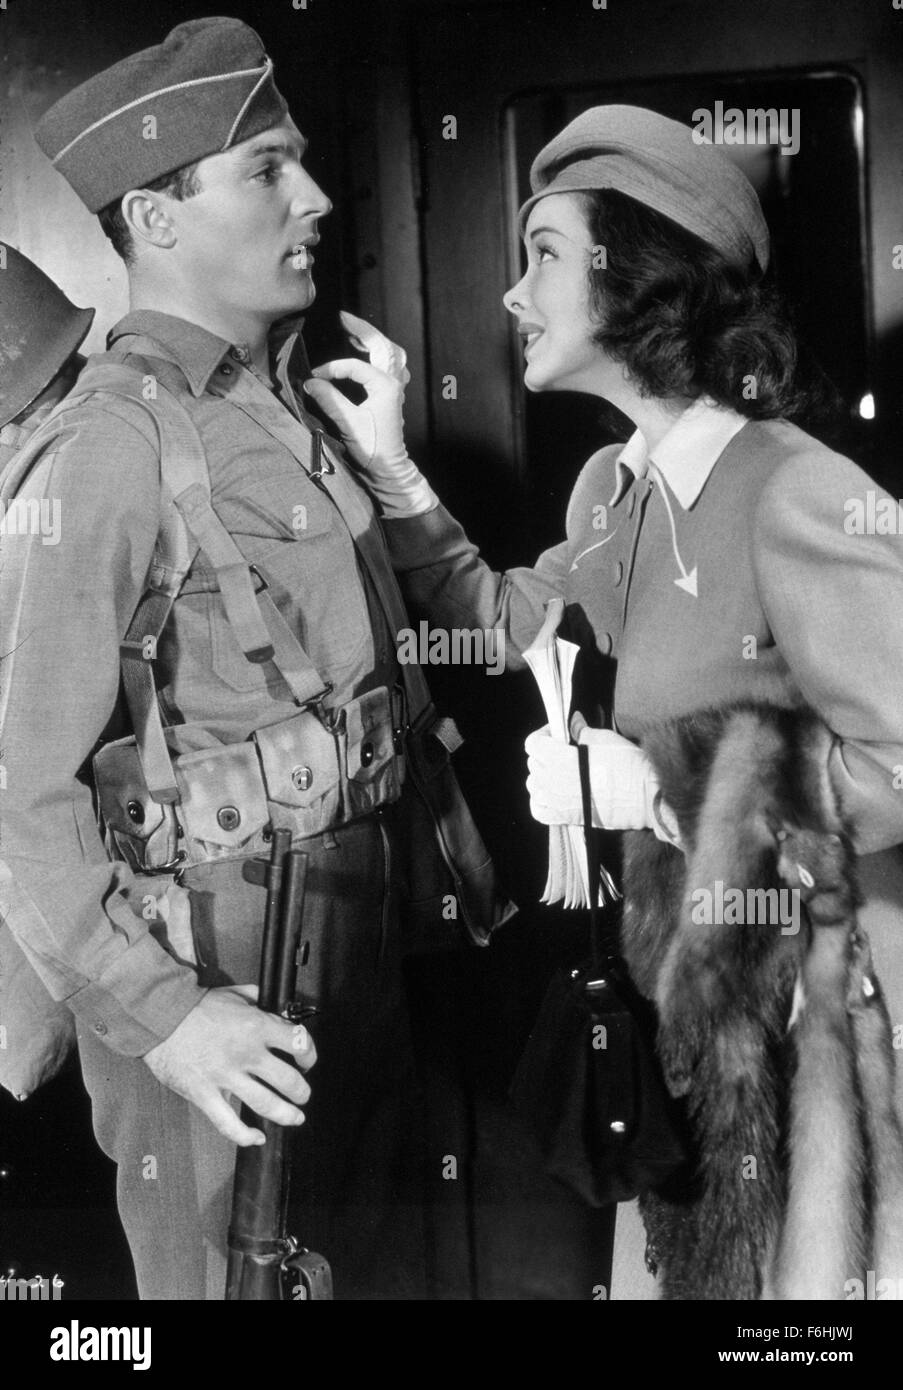 1943, Film Title: THOUSANDS CHEER, Director: GEORGE SIDNEY, Studio: MGM, Pictured: KATHRYN GRAYSON, GENE KELLY. - Stock Image